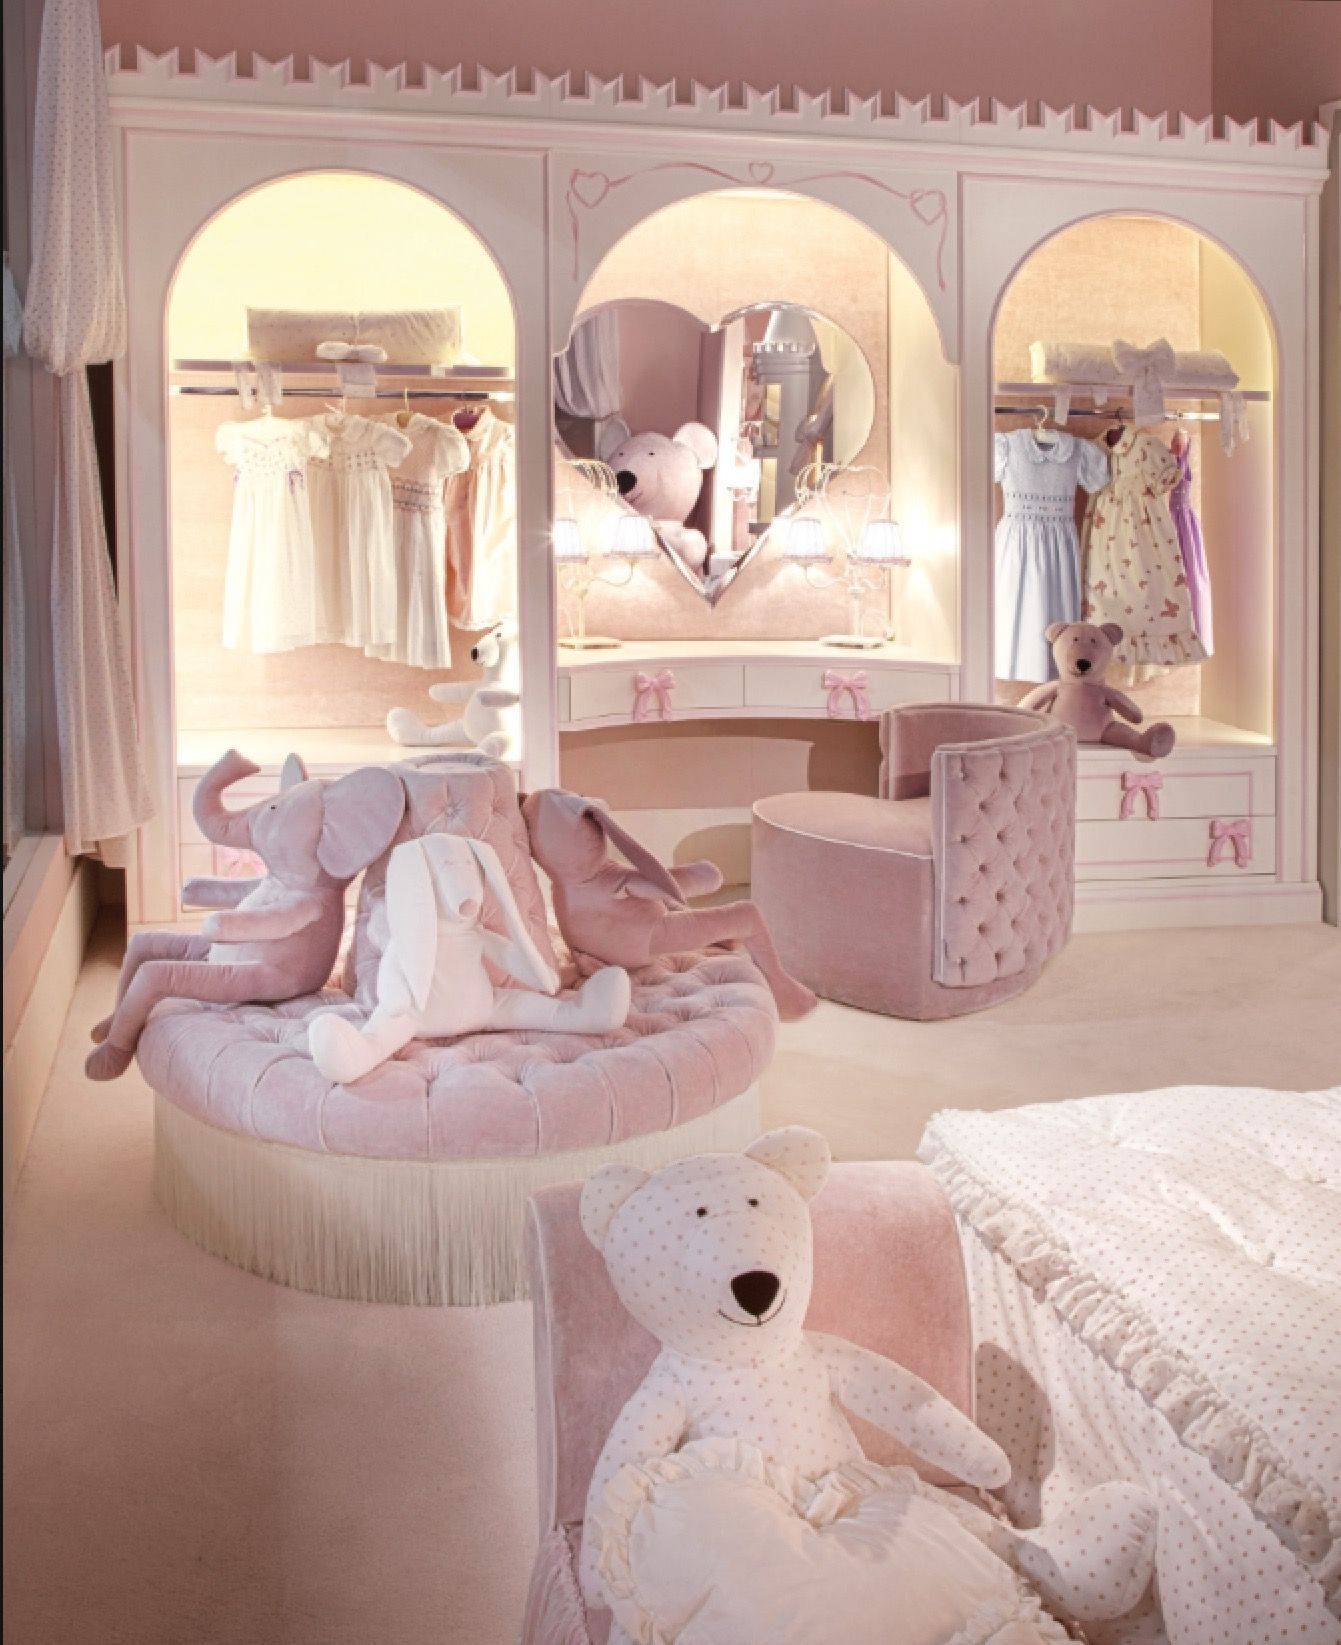 Want To Make A Stylish And Luxurious Kids Room Need Inspiration In Decorating Home Decor And Kids Room Kids Room Design Girl Bedroom Designs Princess Bedrooms